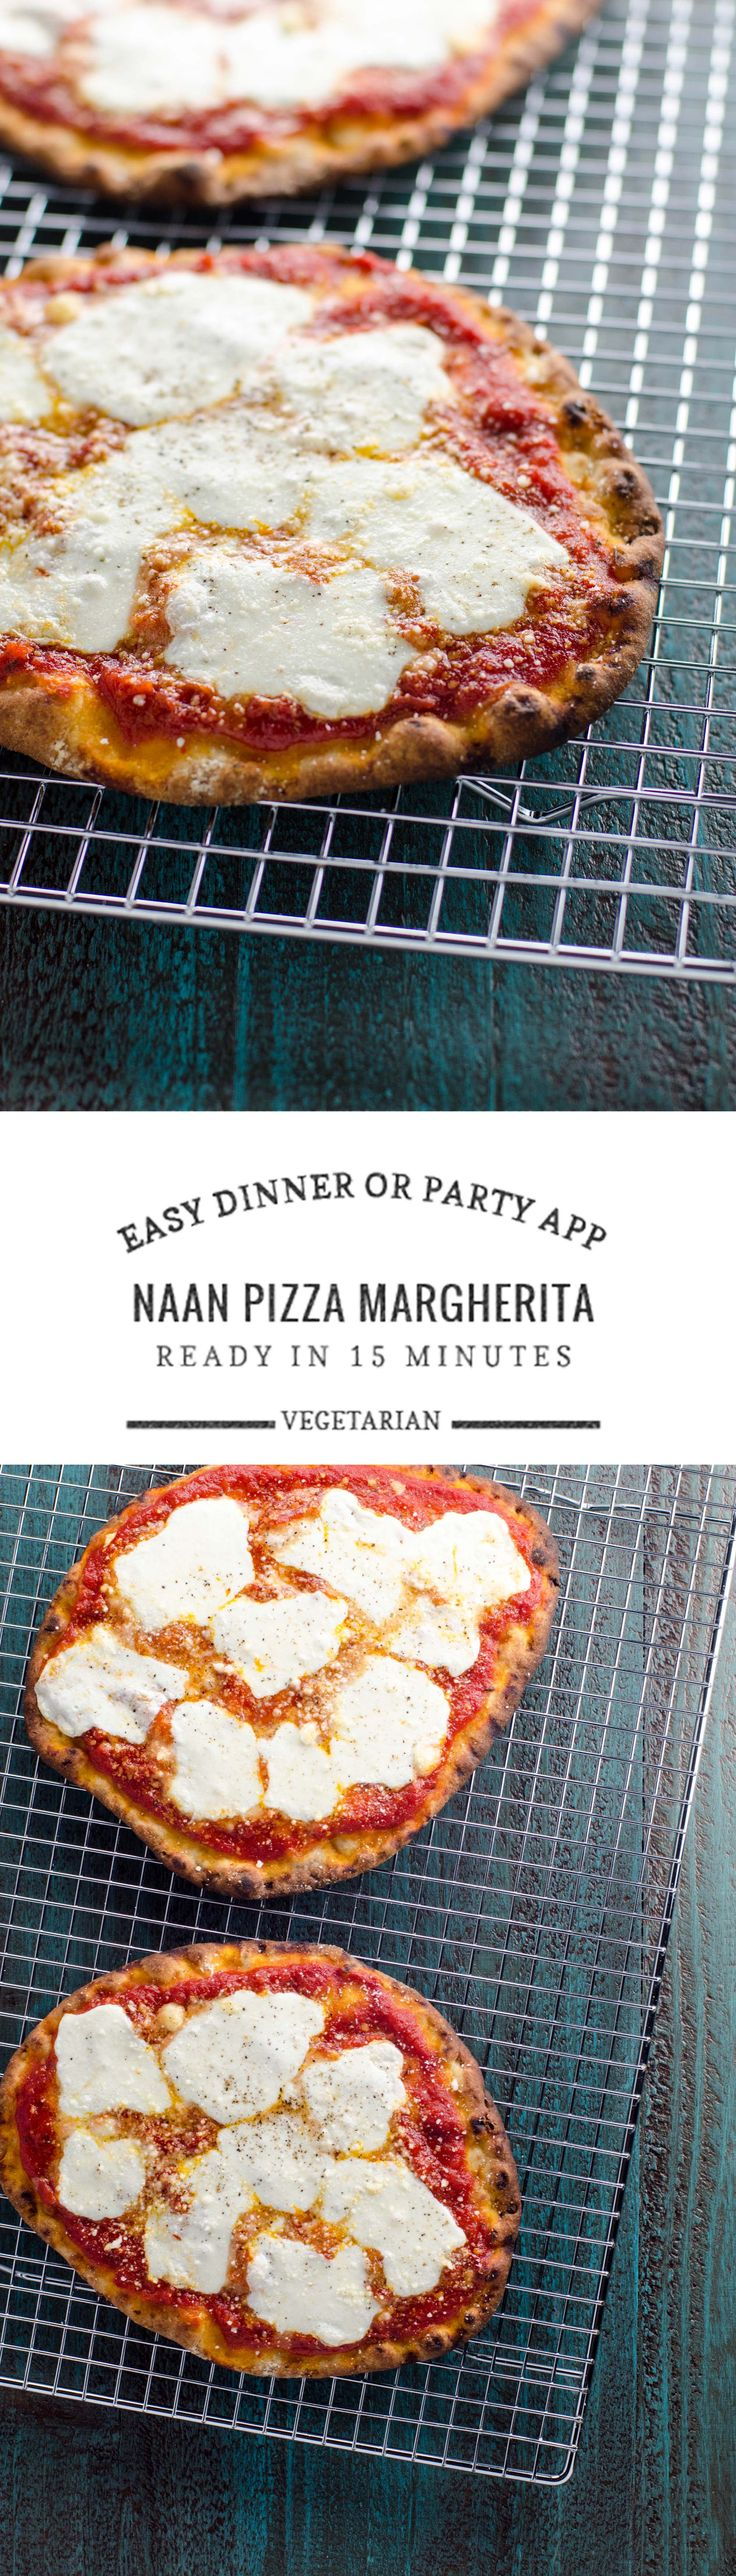 Naan pizza margherita is ready in 15 minutes (with only 5 minutes of prep). It's equally at home as a weeknight dinner or a game day/party appetizer.